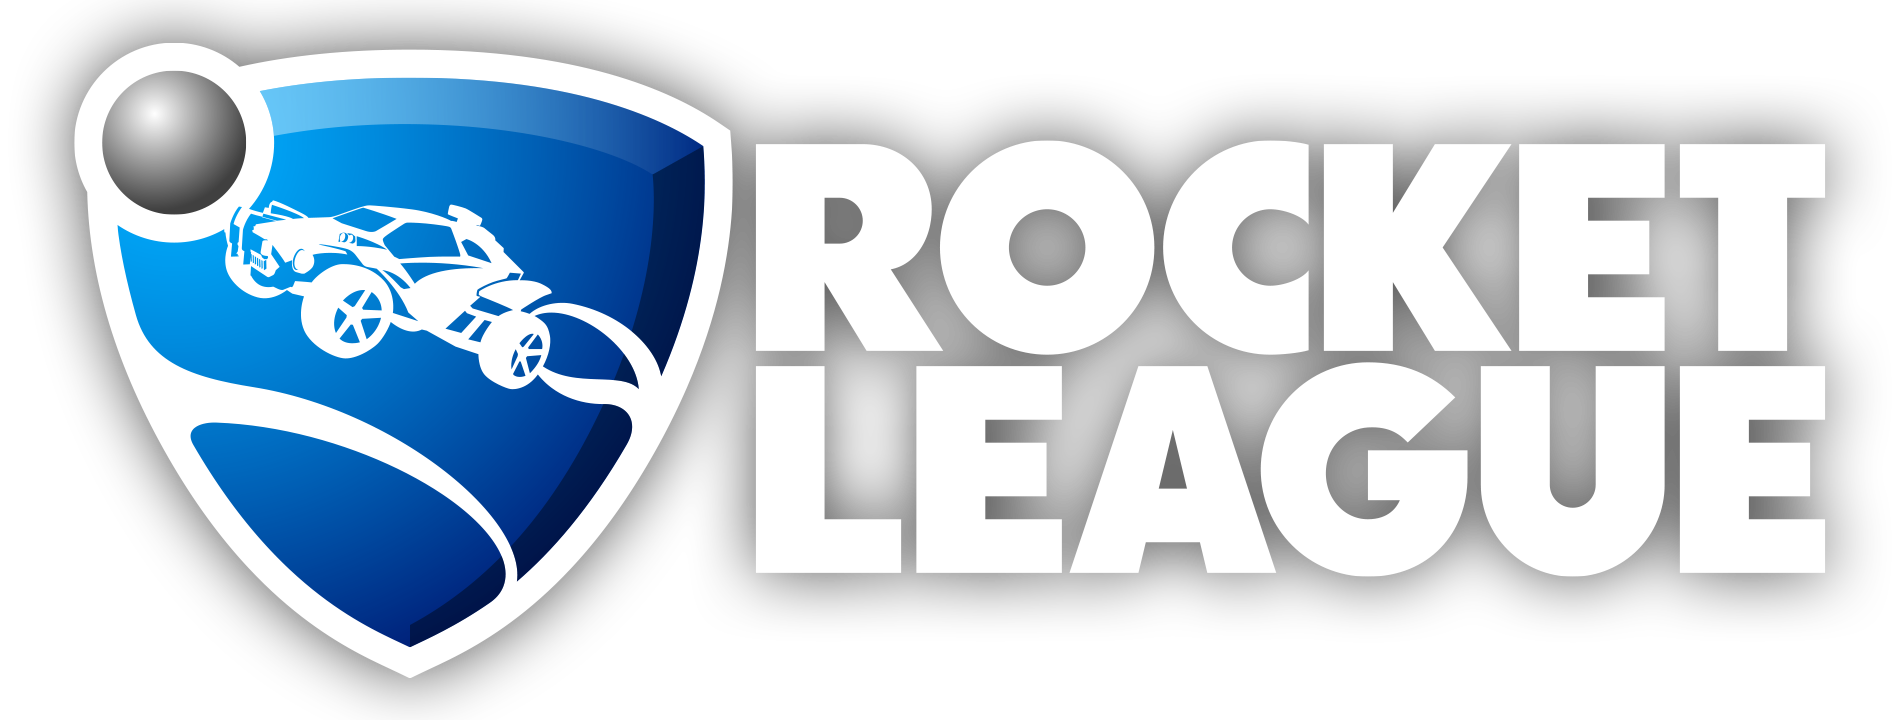 logo rocket league